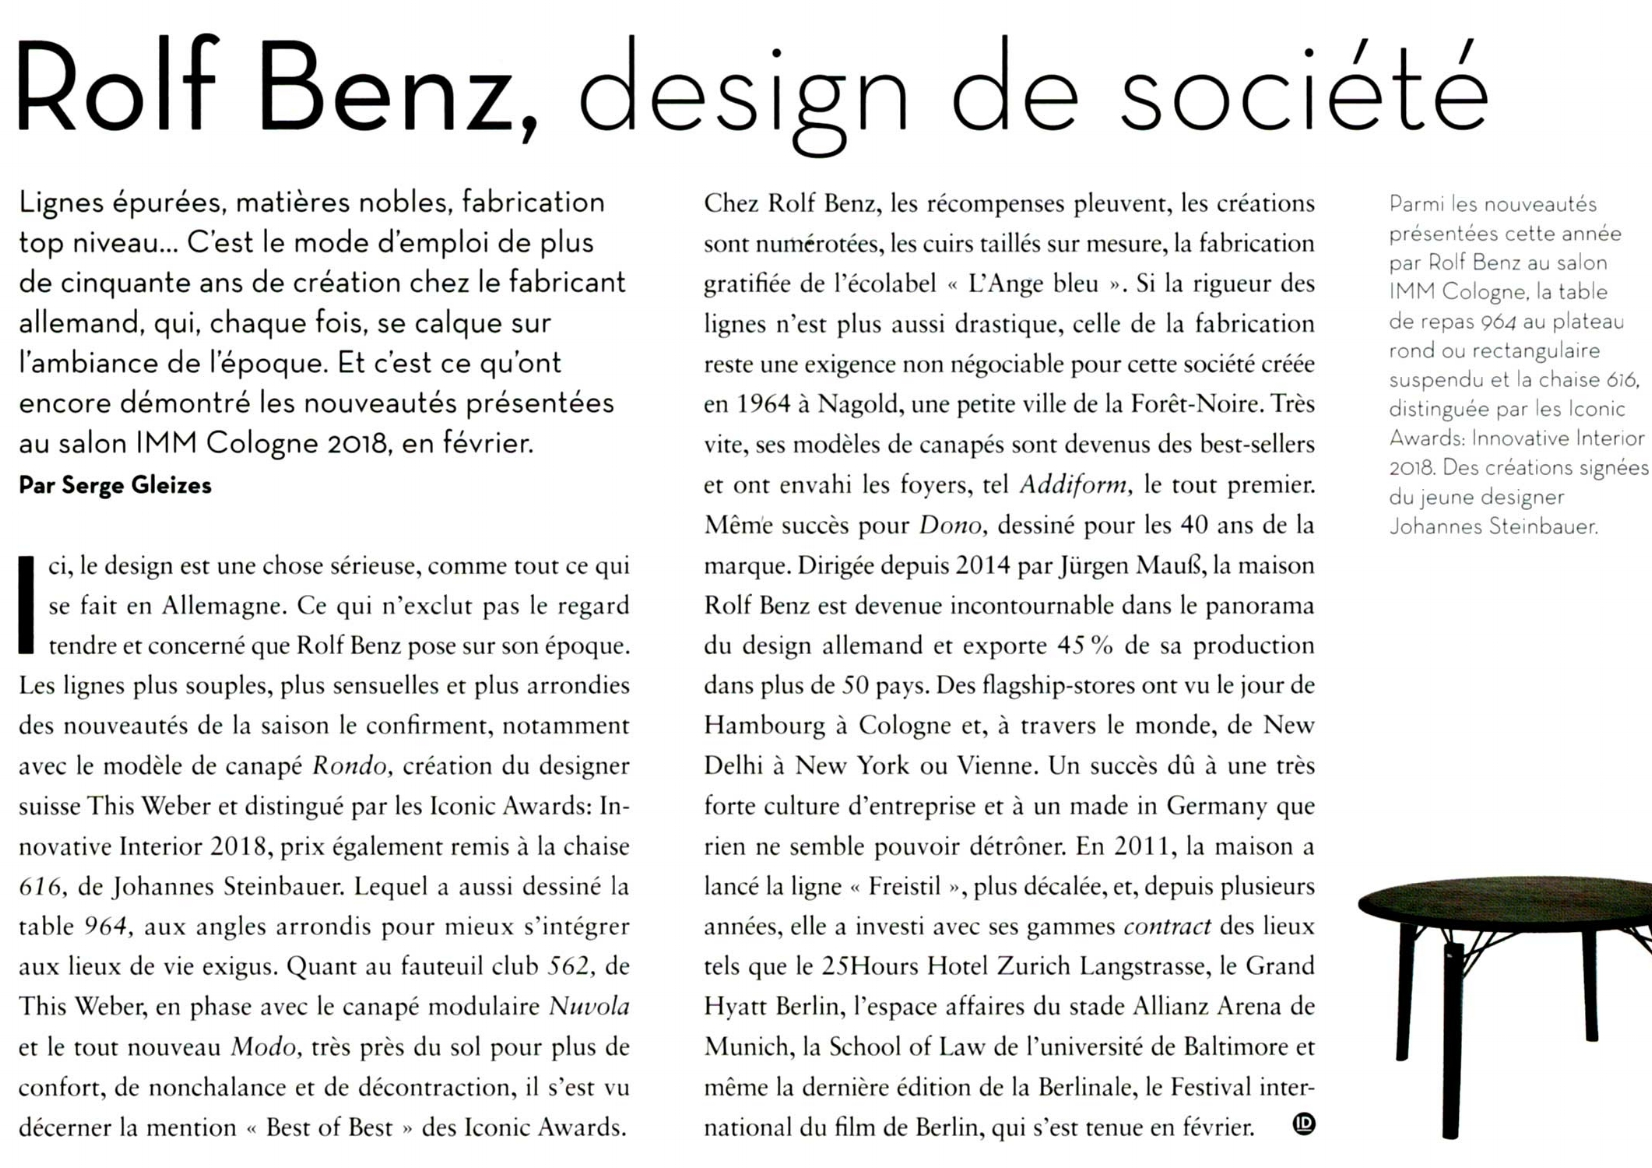 181203_IDEAT_COVER_Fr05122018_2.jpg